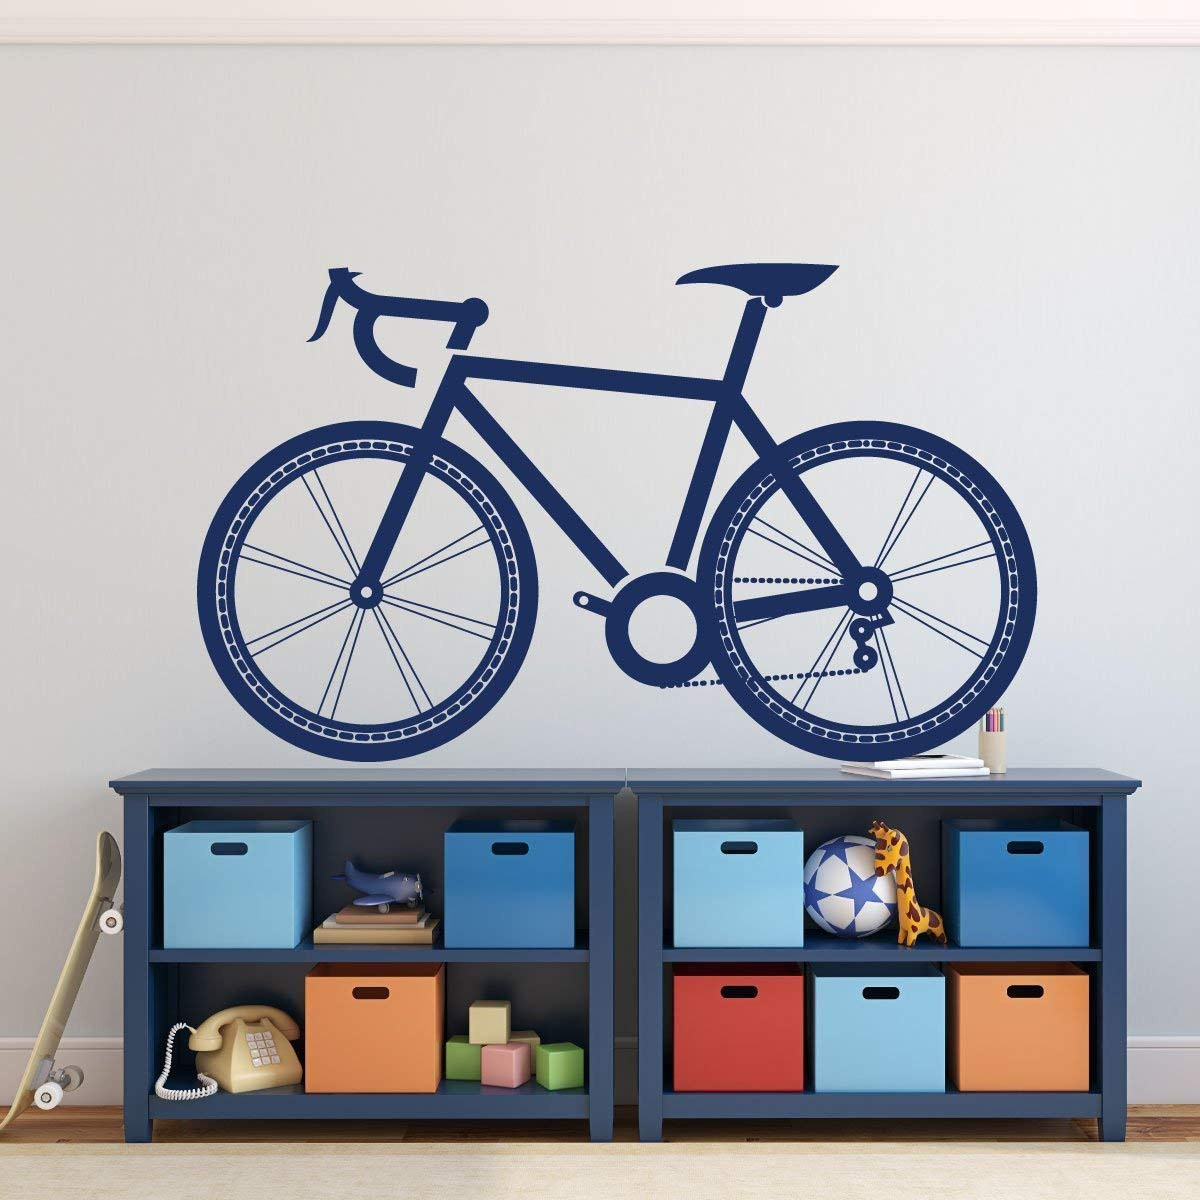 Bike Wall Decal Vinyl Sticker Vinyl Decor Wall Decal With Regard To Most Up To Date Bike Wall Decor (Gallery 20 of 20)